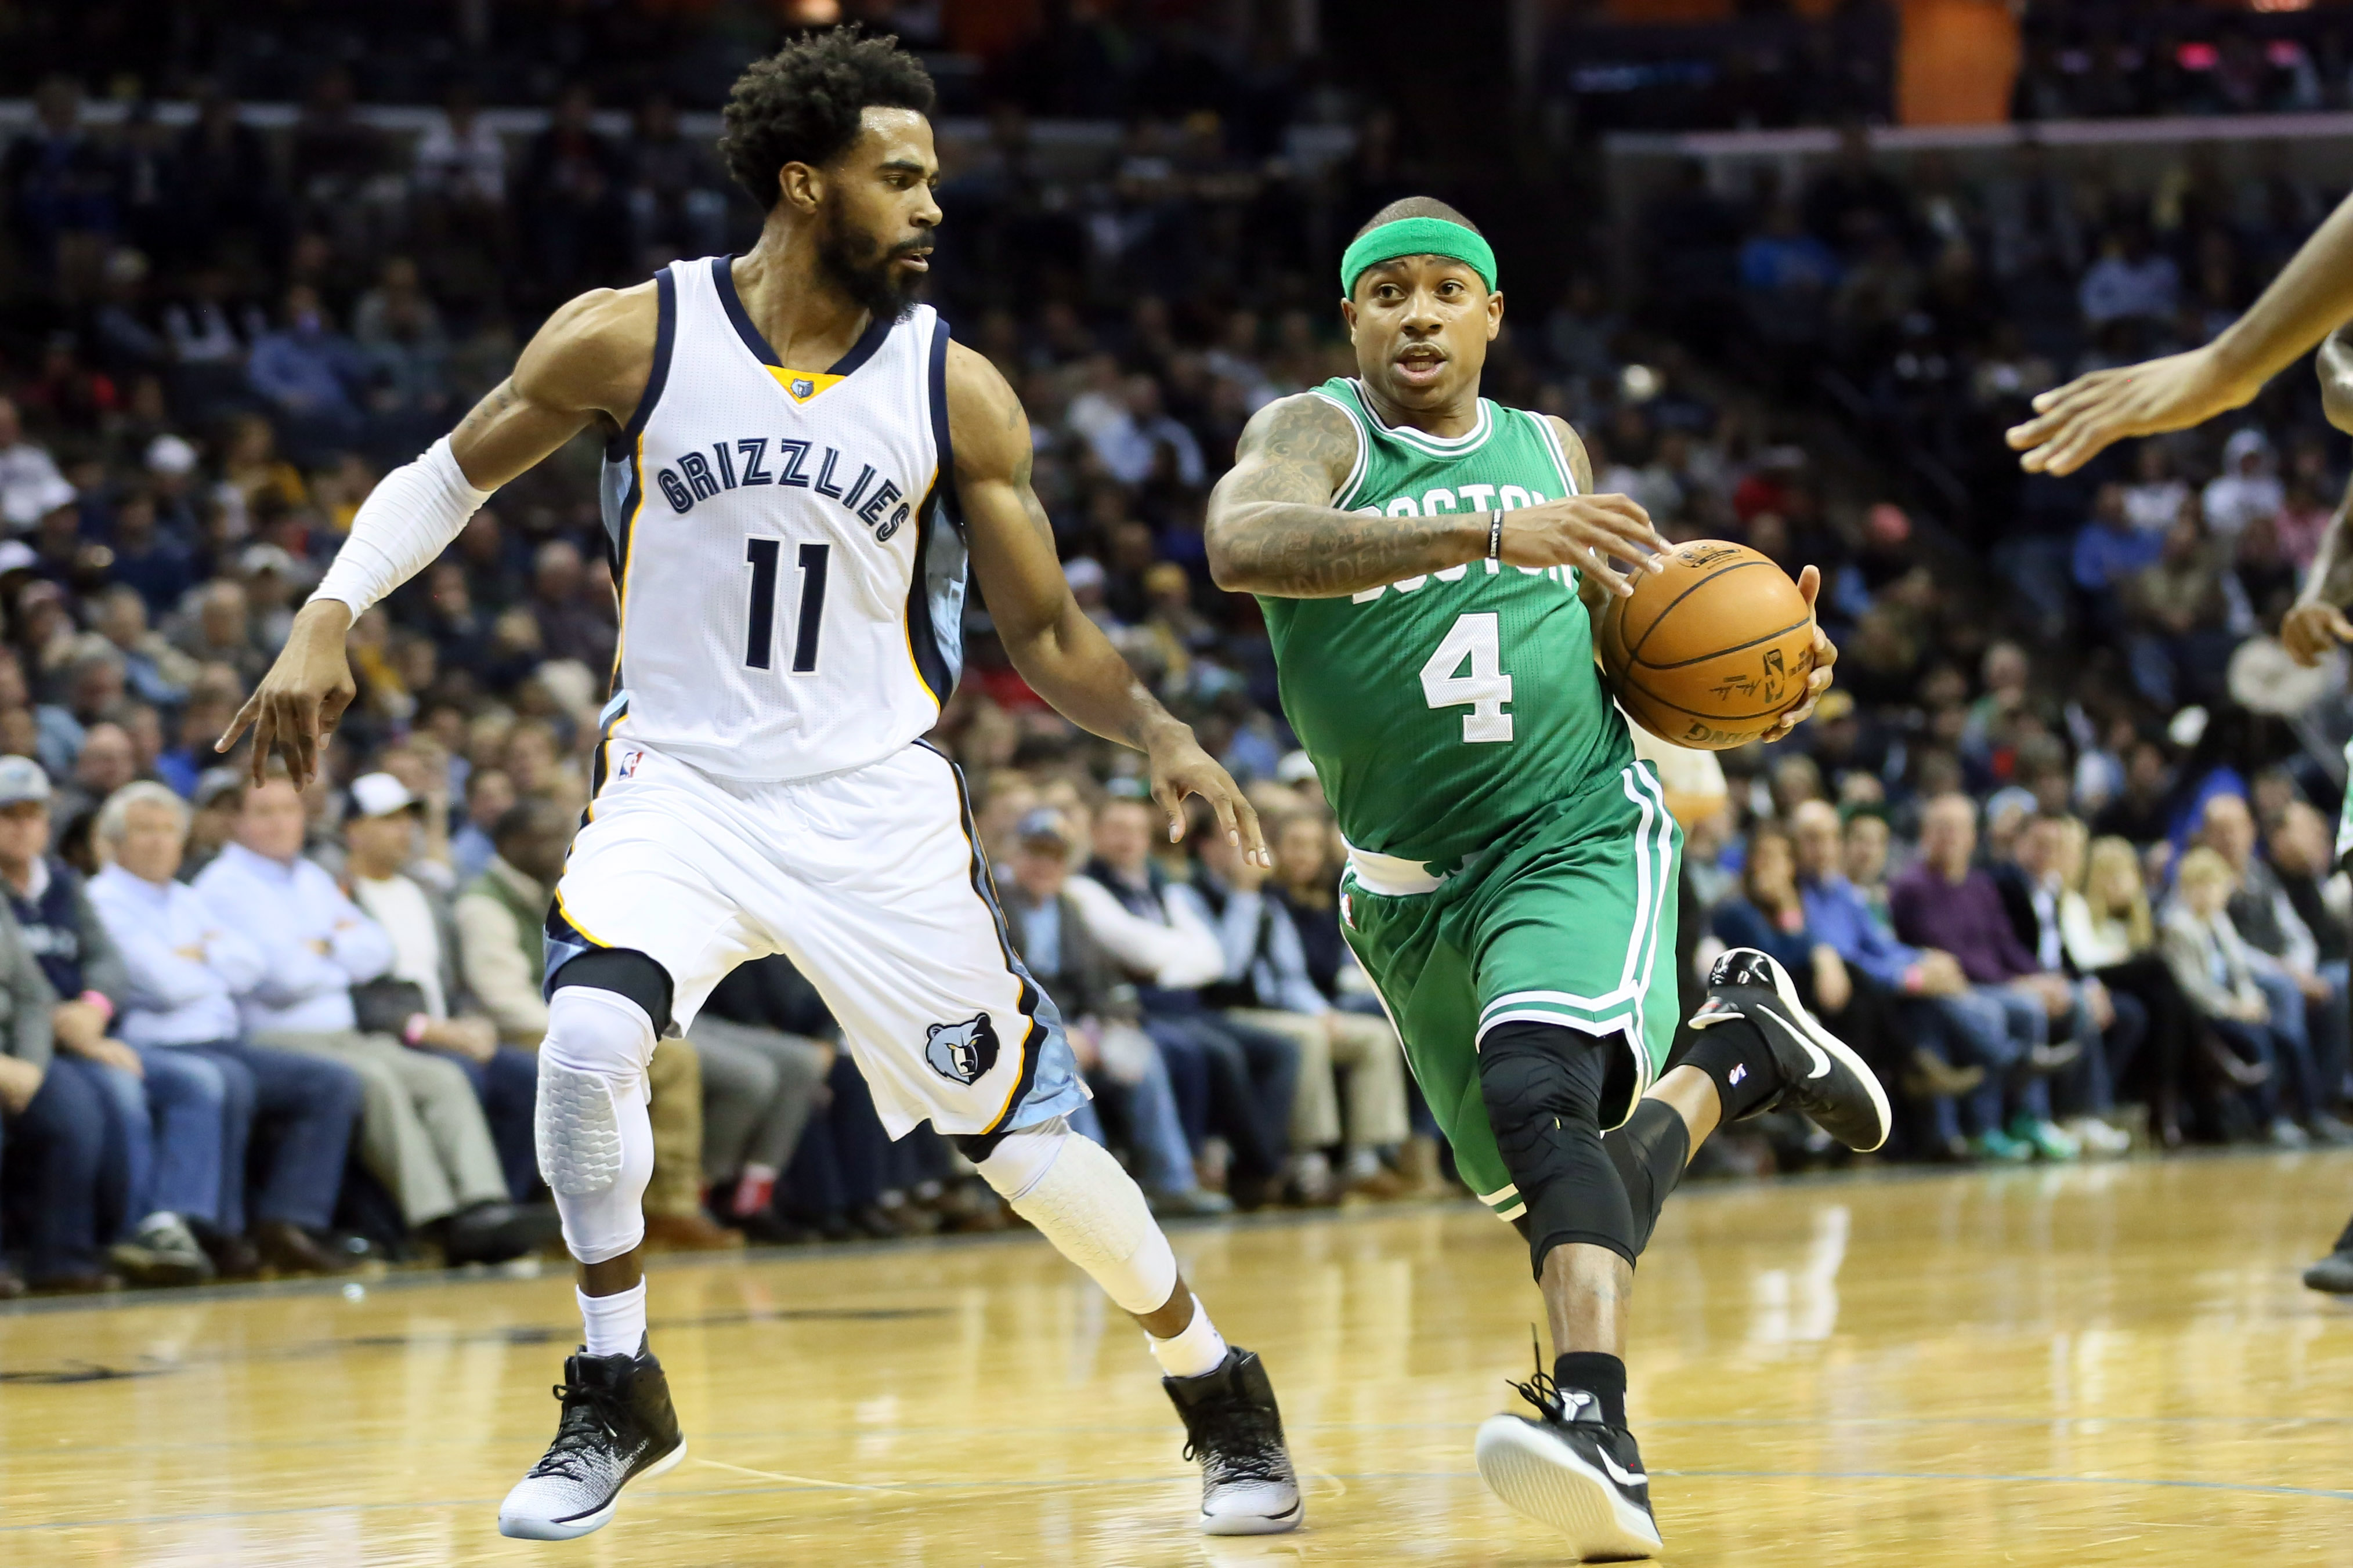 timeless design e8c07 502f6 Game preview: Memphis at Boston - Grizzly Bear Blues